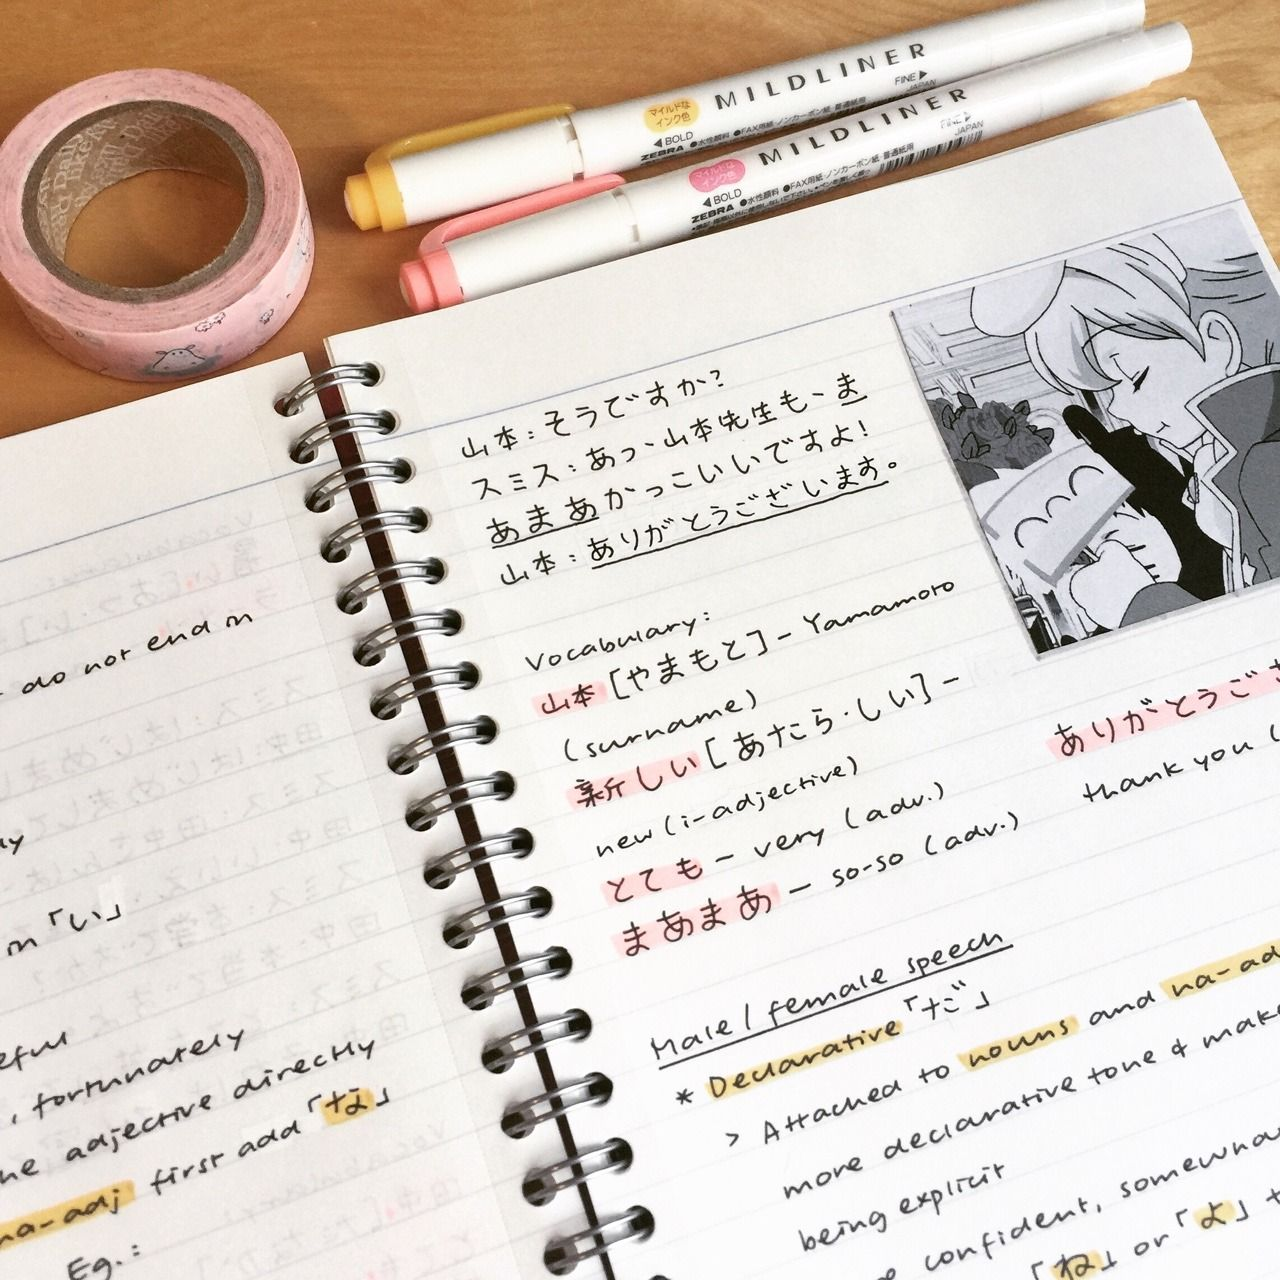 Anime Guide To Hiragana: Learning Japanese Using Tae Kim's Guide! My Friend Managed